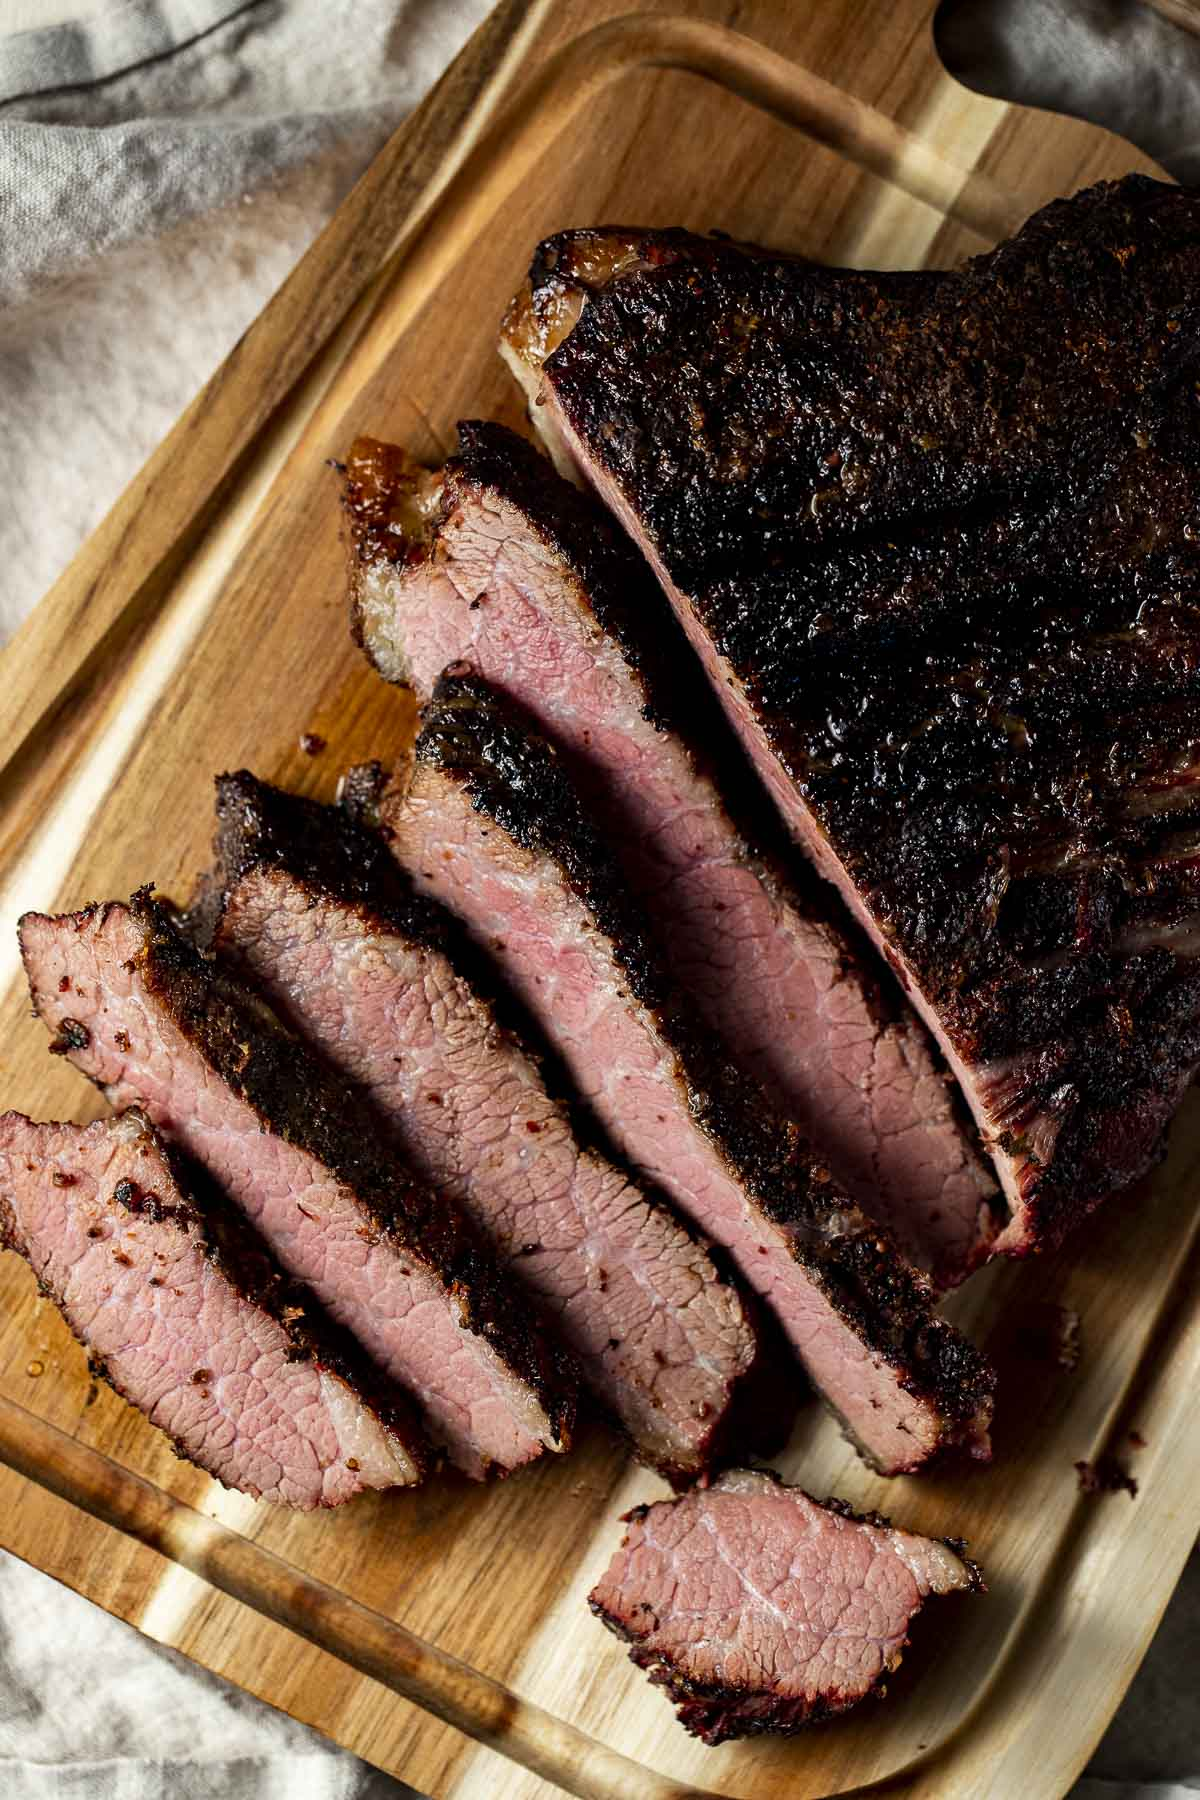 Overhead view of slices of brisket on a wooden board.